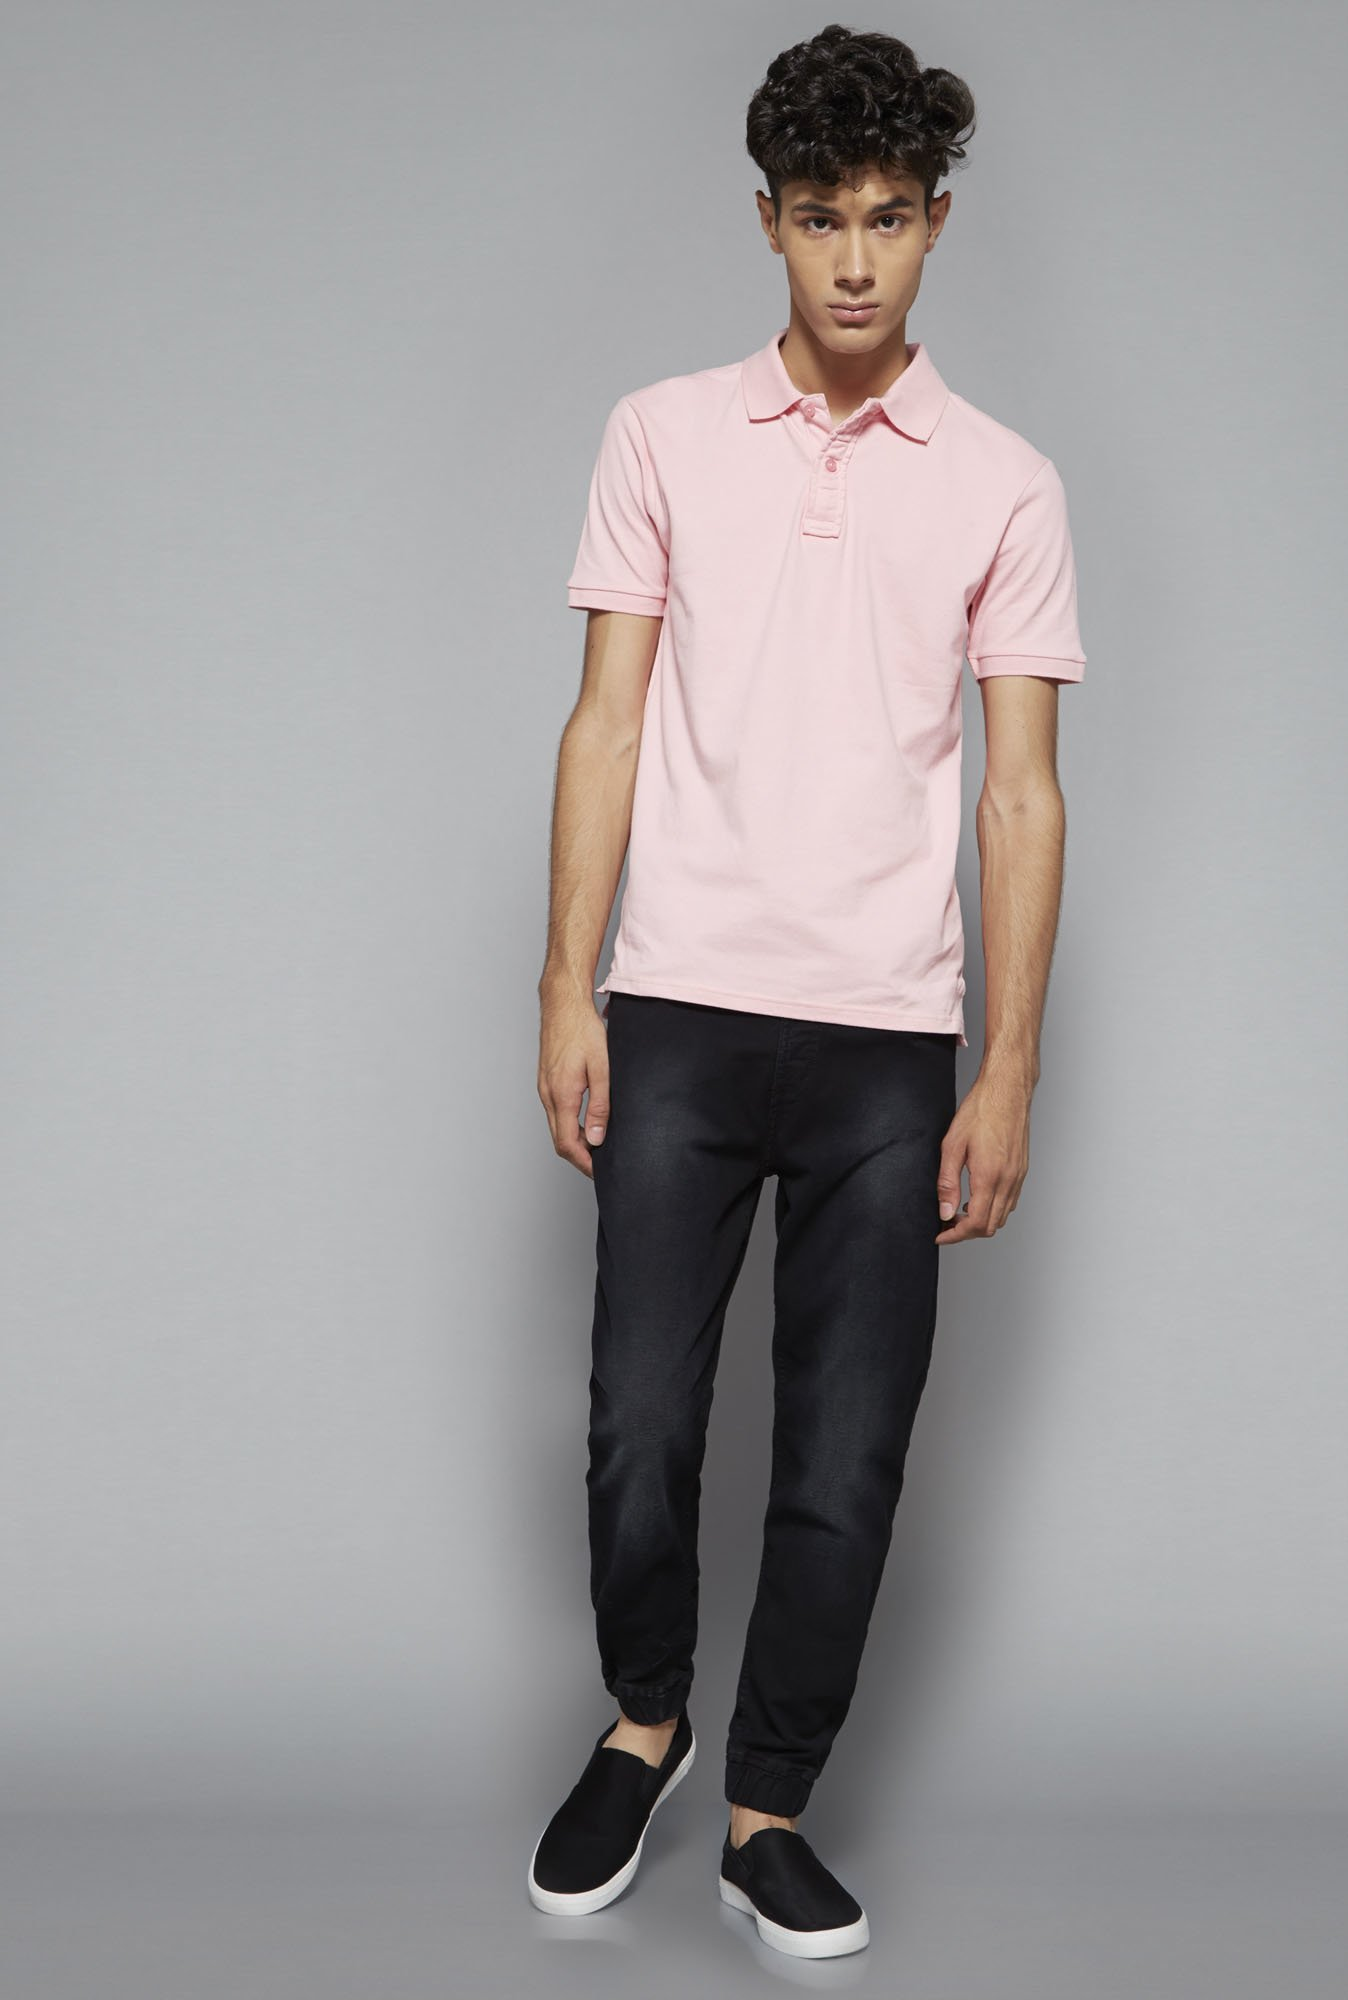 Nuon by Westside Pink Slim Fit Polo T Shirt